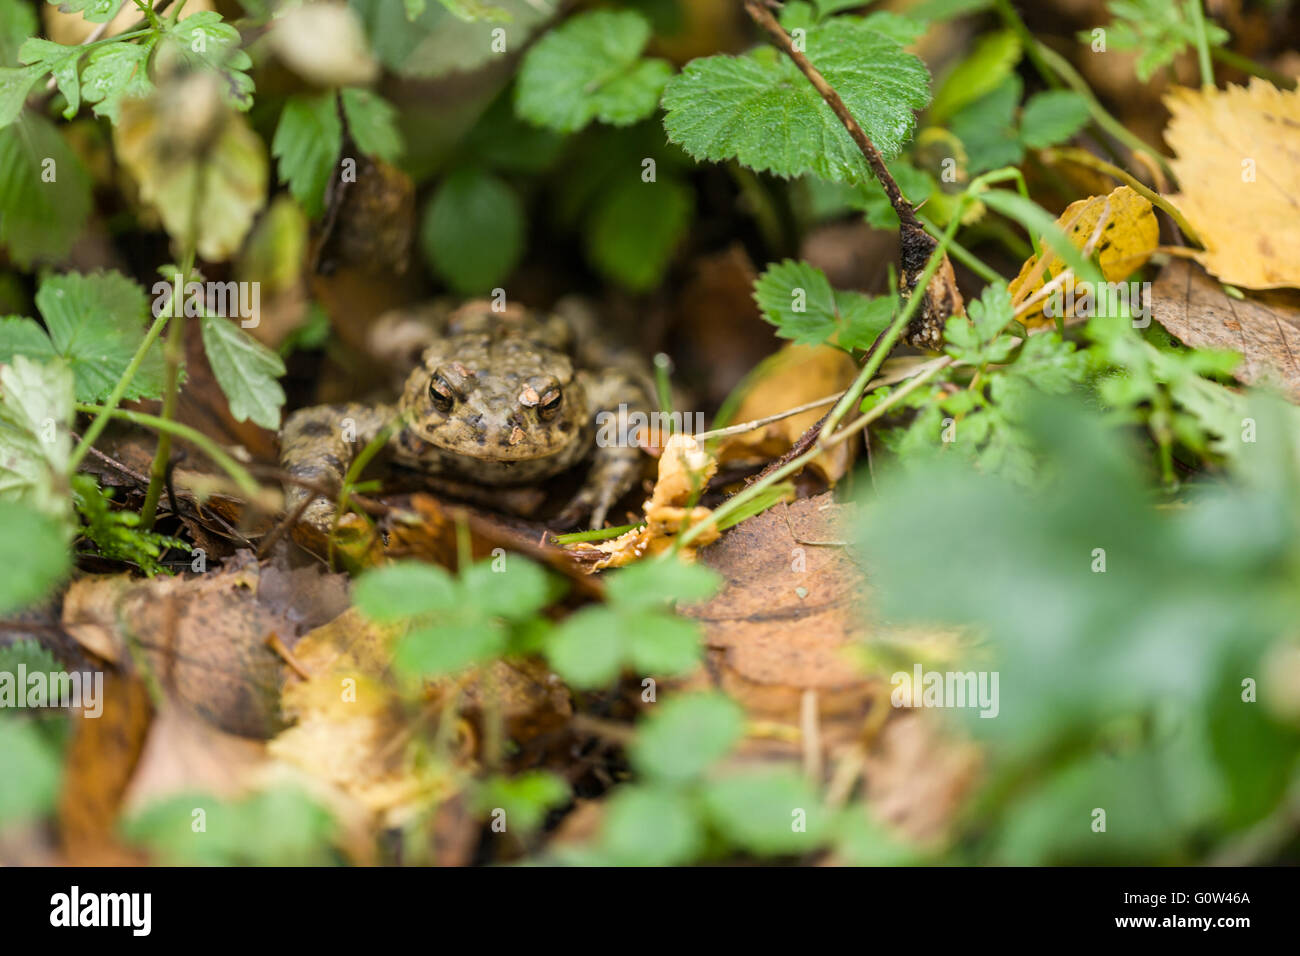 Common frog Rana temporaria in leaf litter - Stock Image